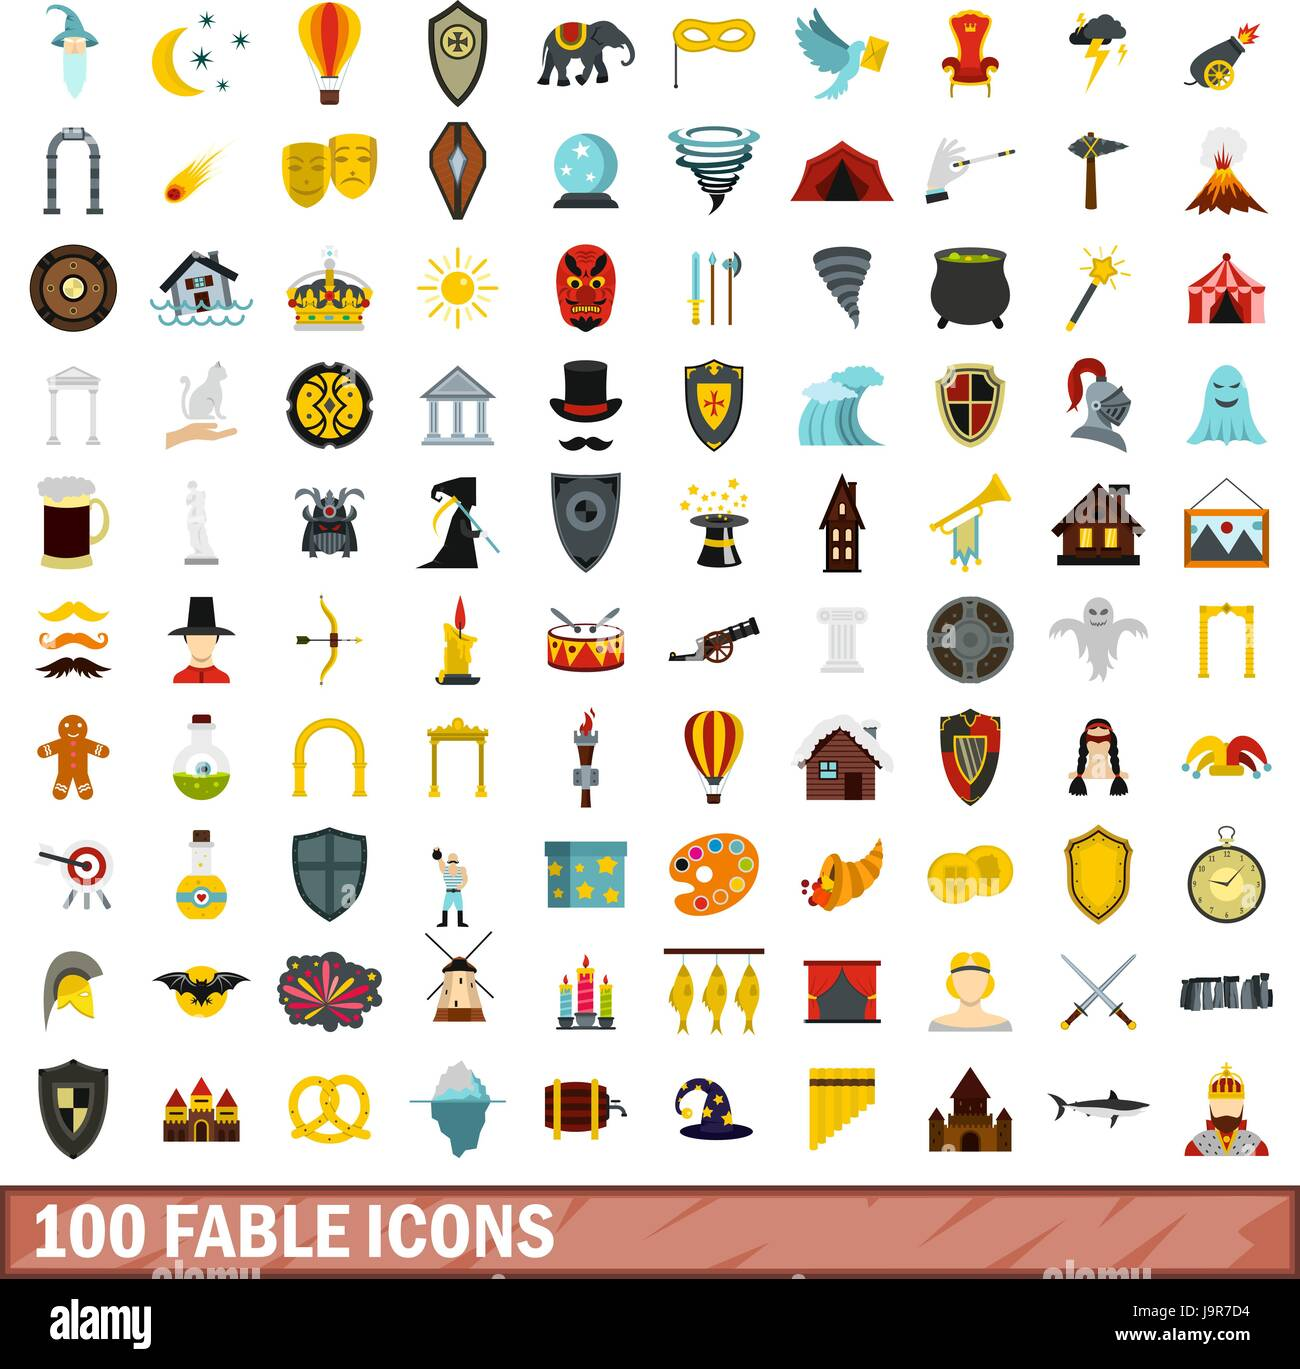 100 fable icons set, flat style - Stock Vector